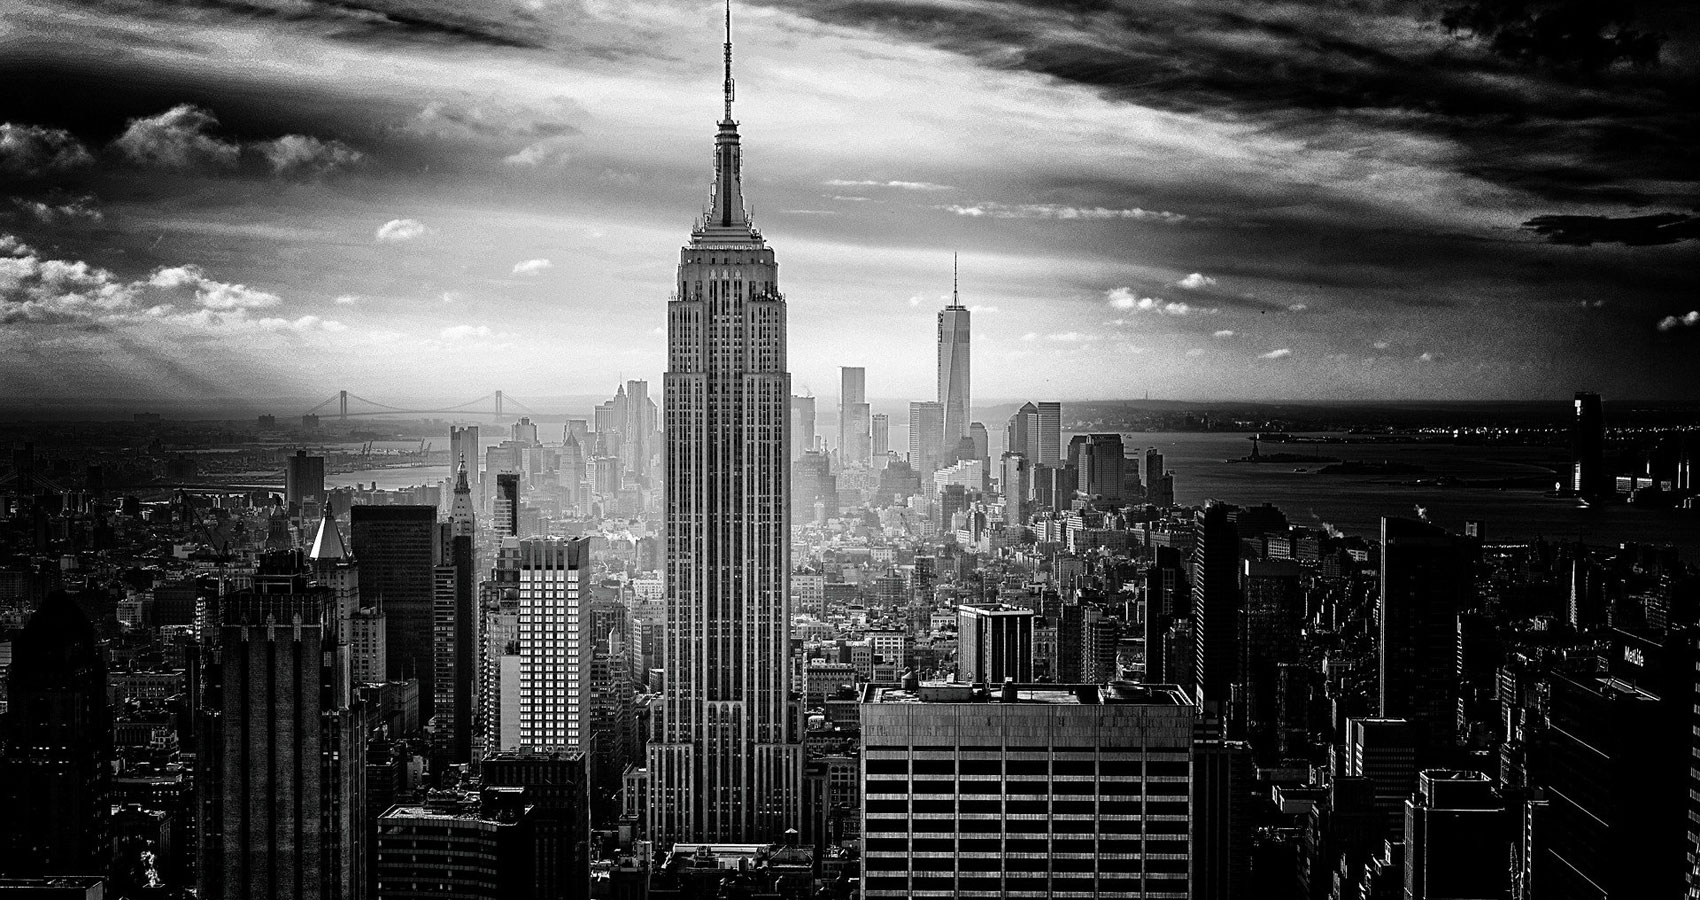 New York City Shrouded In The Mist, poetry by Thaddeus Hutyra at Spillwords.com